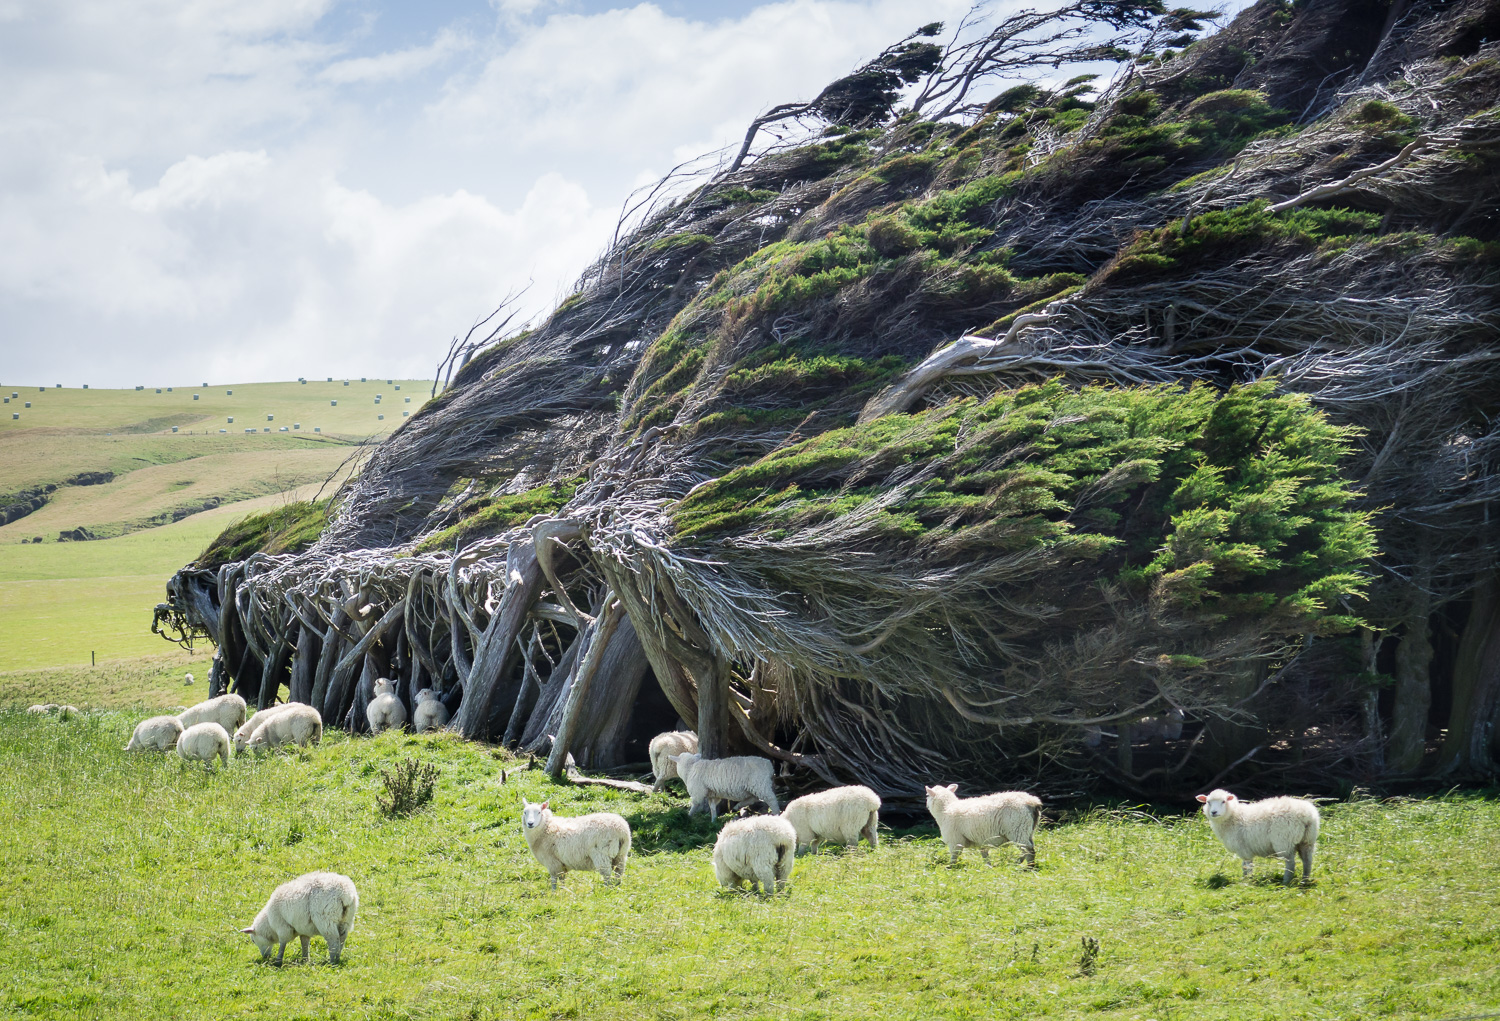 Wind sculpted and barely surviving, but providing shelter for the sheep - the macrocarpa trees (Monterey cyprus) at Slope Point in the Catlins, in the south of the South Island.